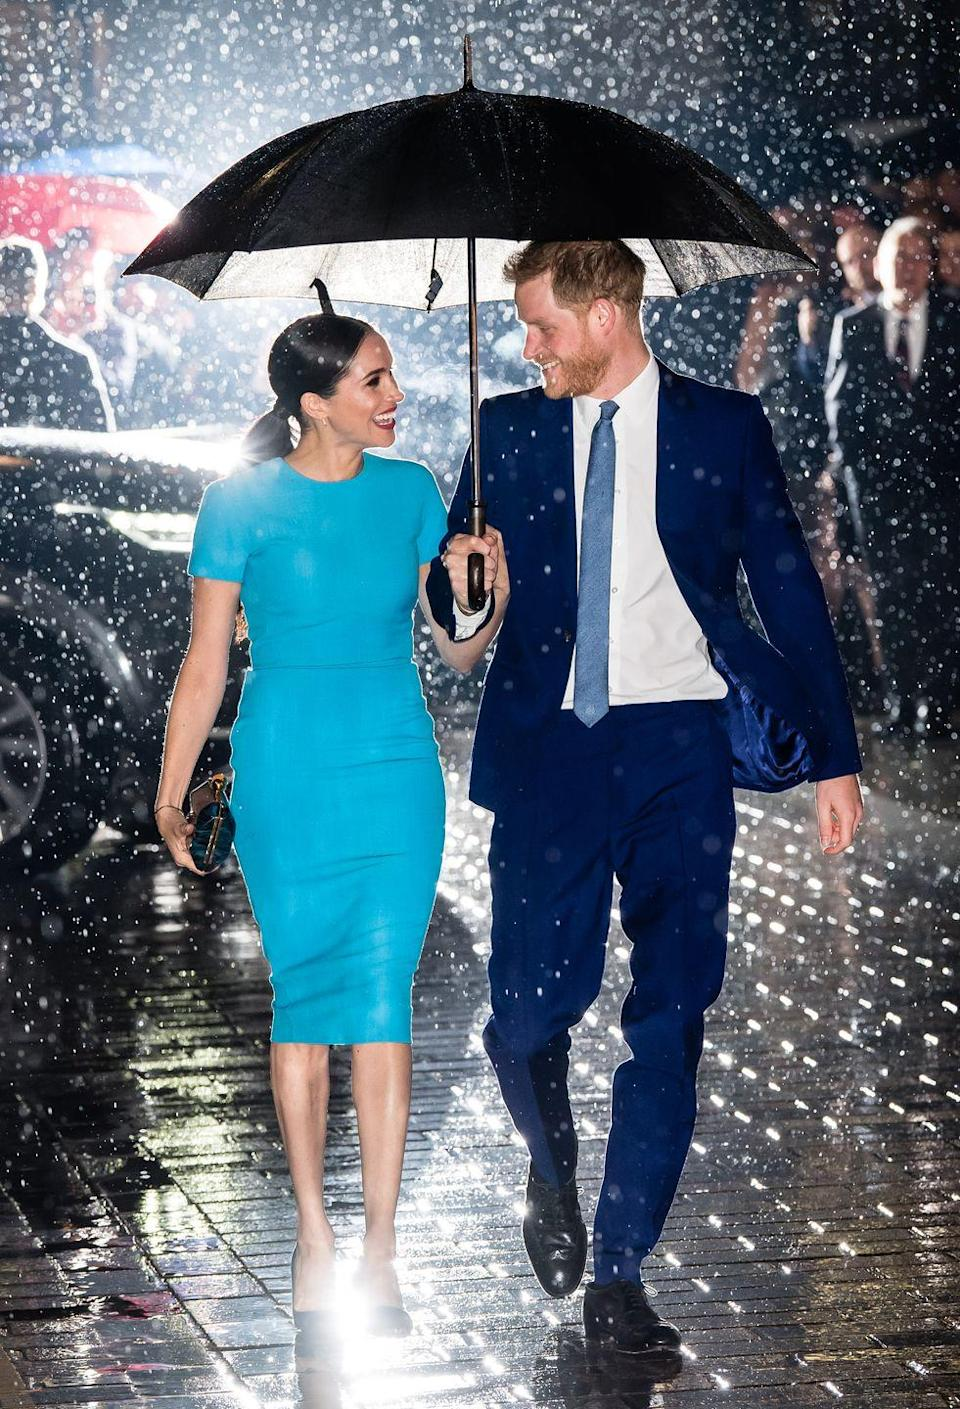 "<p>When Meghan Markle returned to the spotlight at the Endeavour Fund Awards in London, after weeks of staying out of the public eye, one photo seemed to channel the spirit of the evening. This picture of the Sussexes in the rain is already being called ""iconic"" for how it captured the mood of their farewell tour of the UK. </p><p><strong><a href=""https://www.townandcountrymag.com/society/tradition/a31290415/meghan-markle-prince-harry-umbrella-photo-endeavour-fund-awards-interview/"" rel=""nofollow noopener"" target=""_blank"" data-ylk=""slk:Read the full story behind the photograph here."" class=""link rapid-noclick-resp"">Read the full story behind the photograph here.</a></strong></p>"